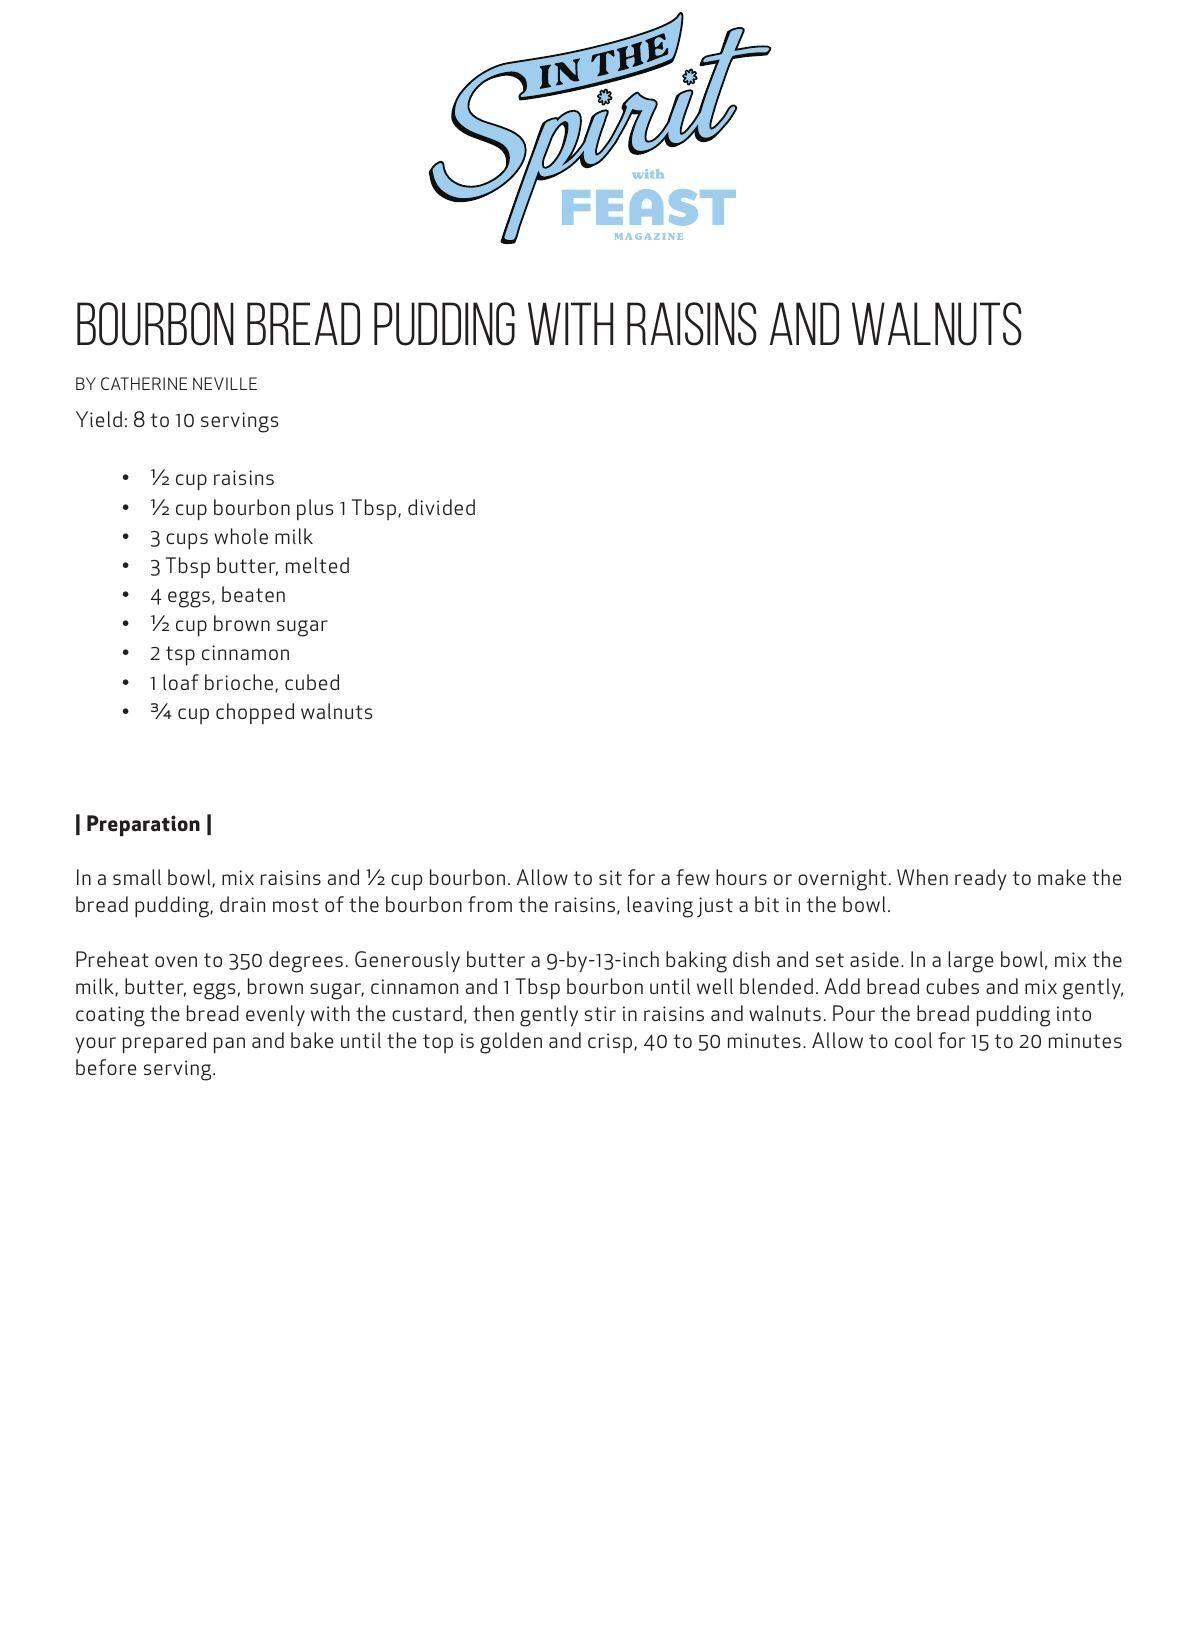 Download this bourbon bread pudding recipe here.